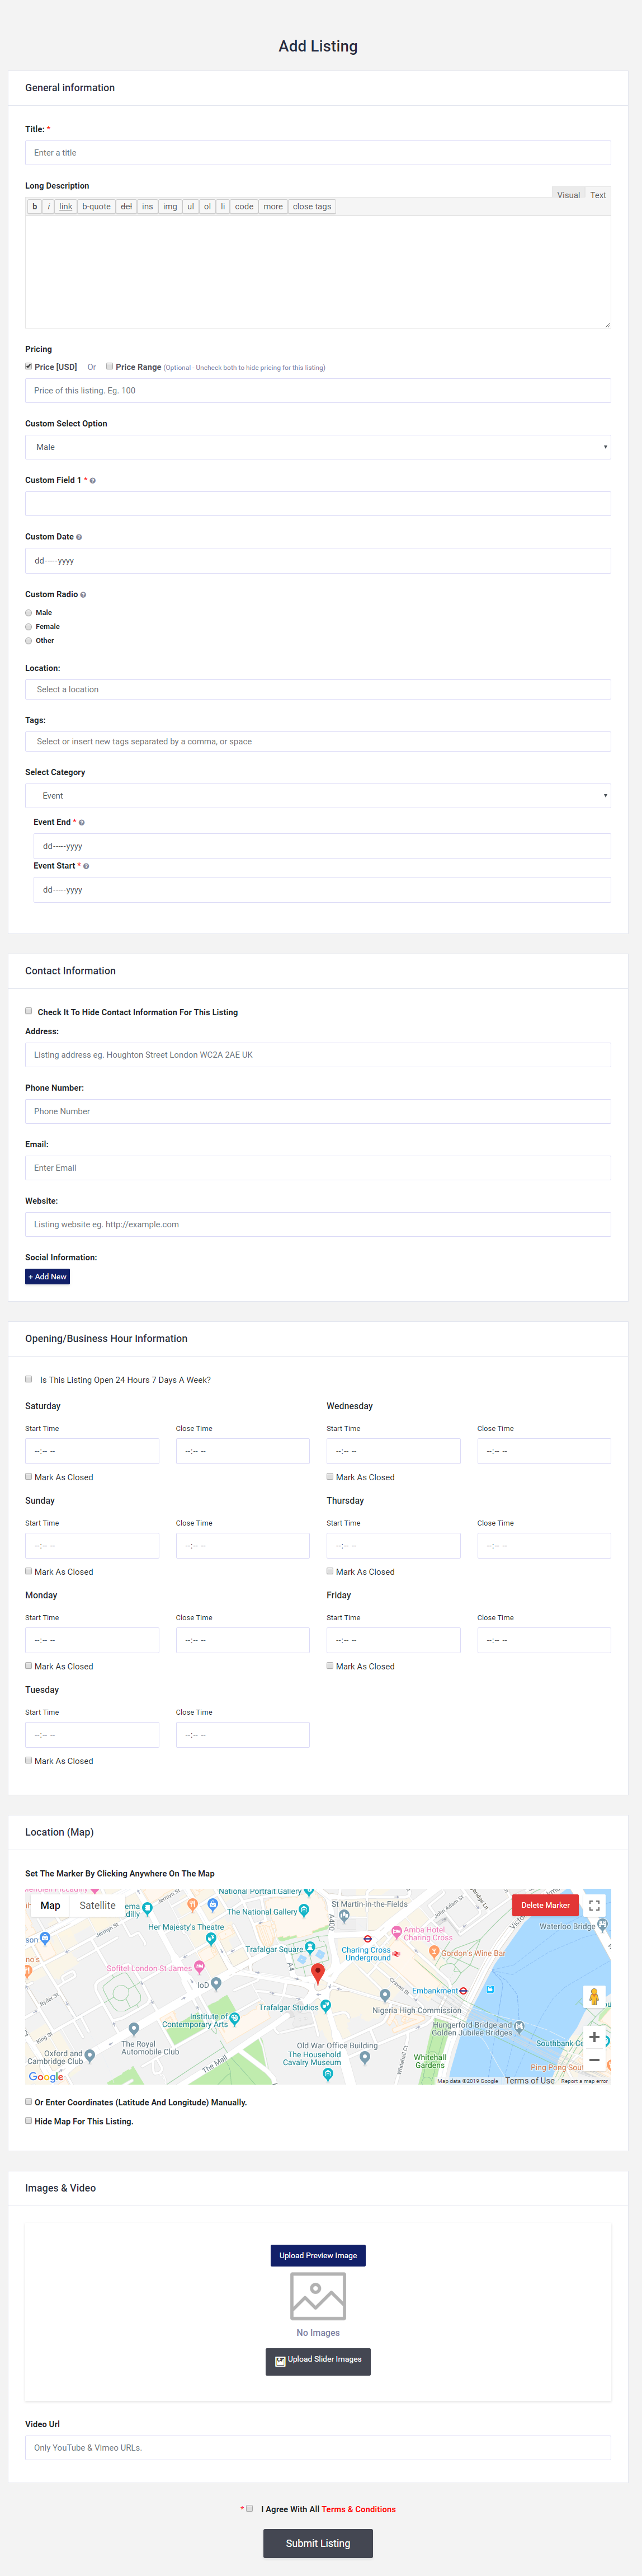 add listing - front end